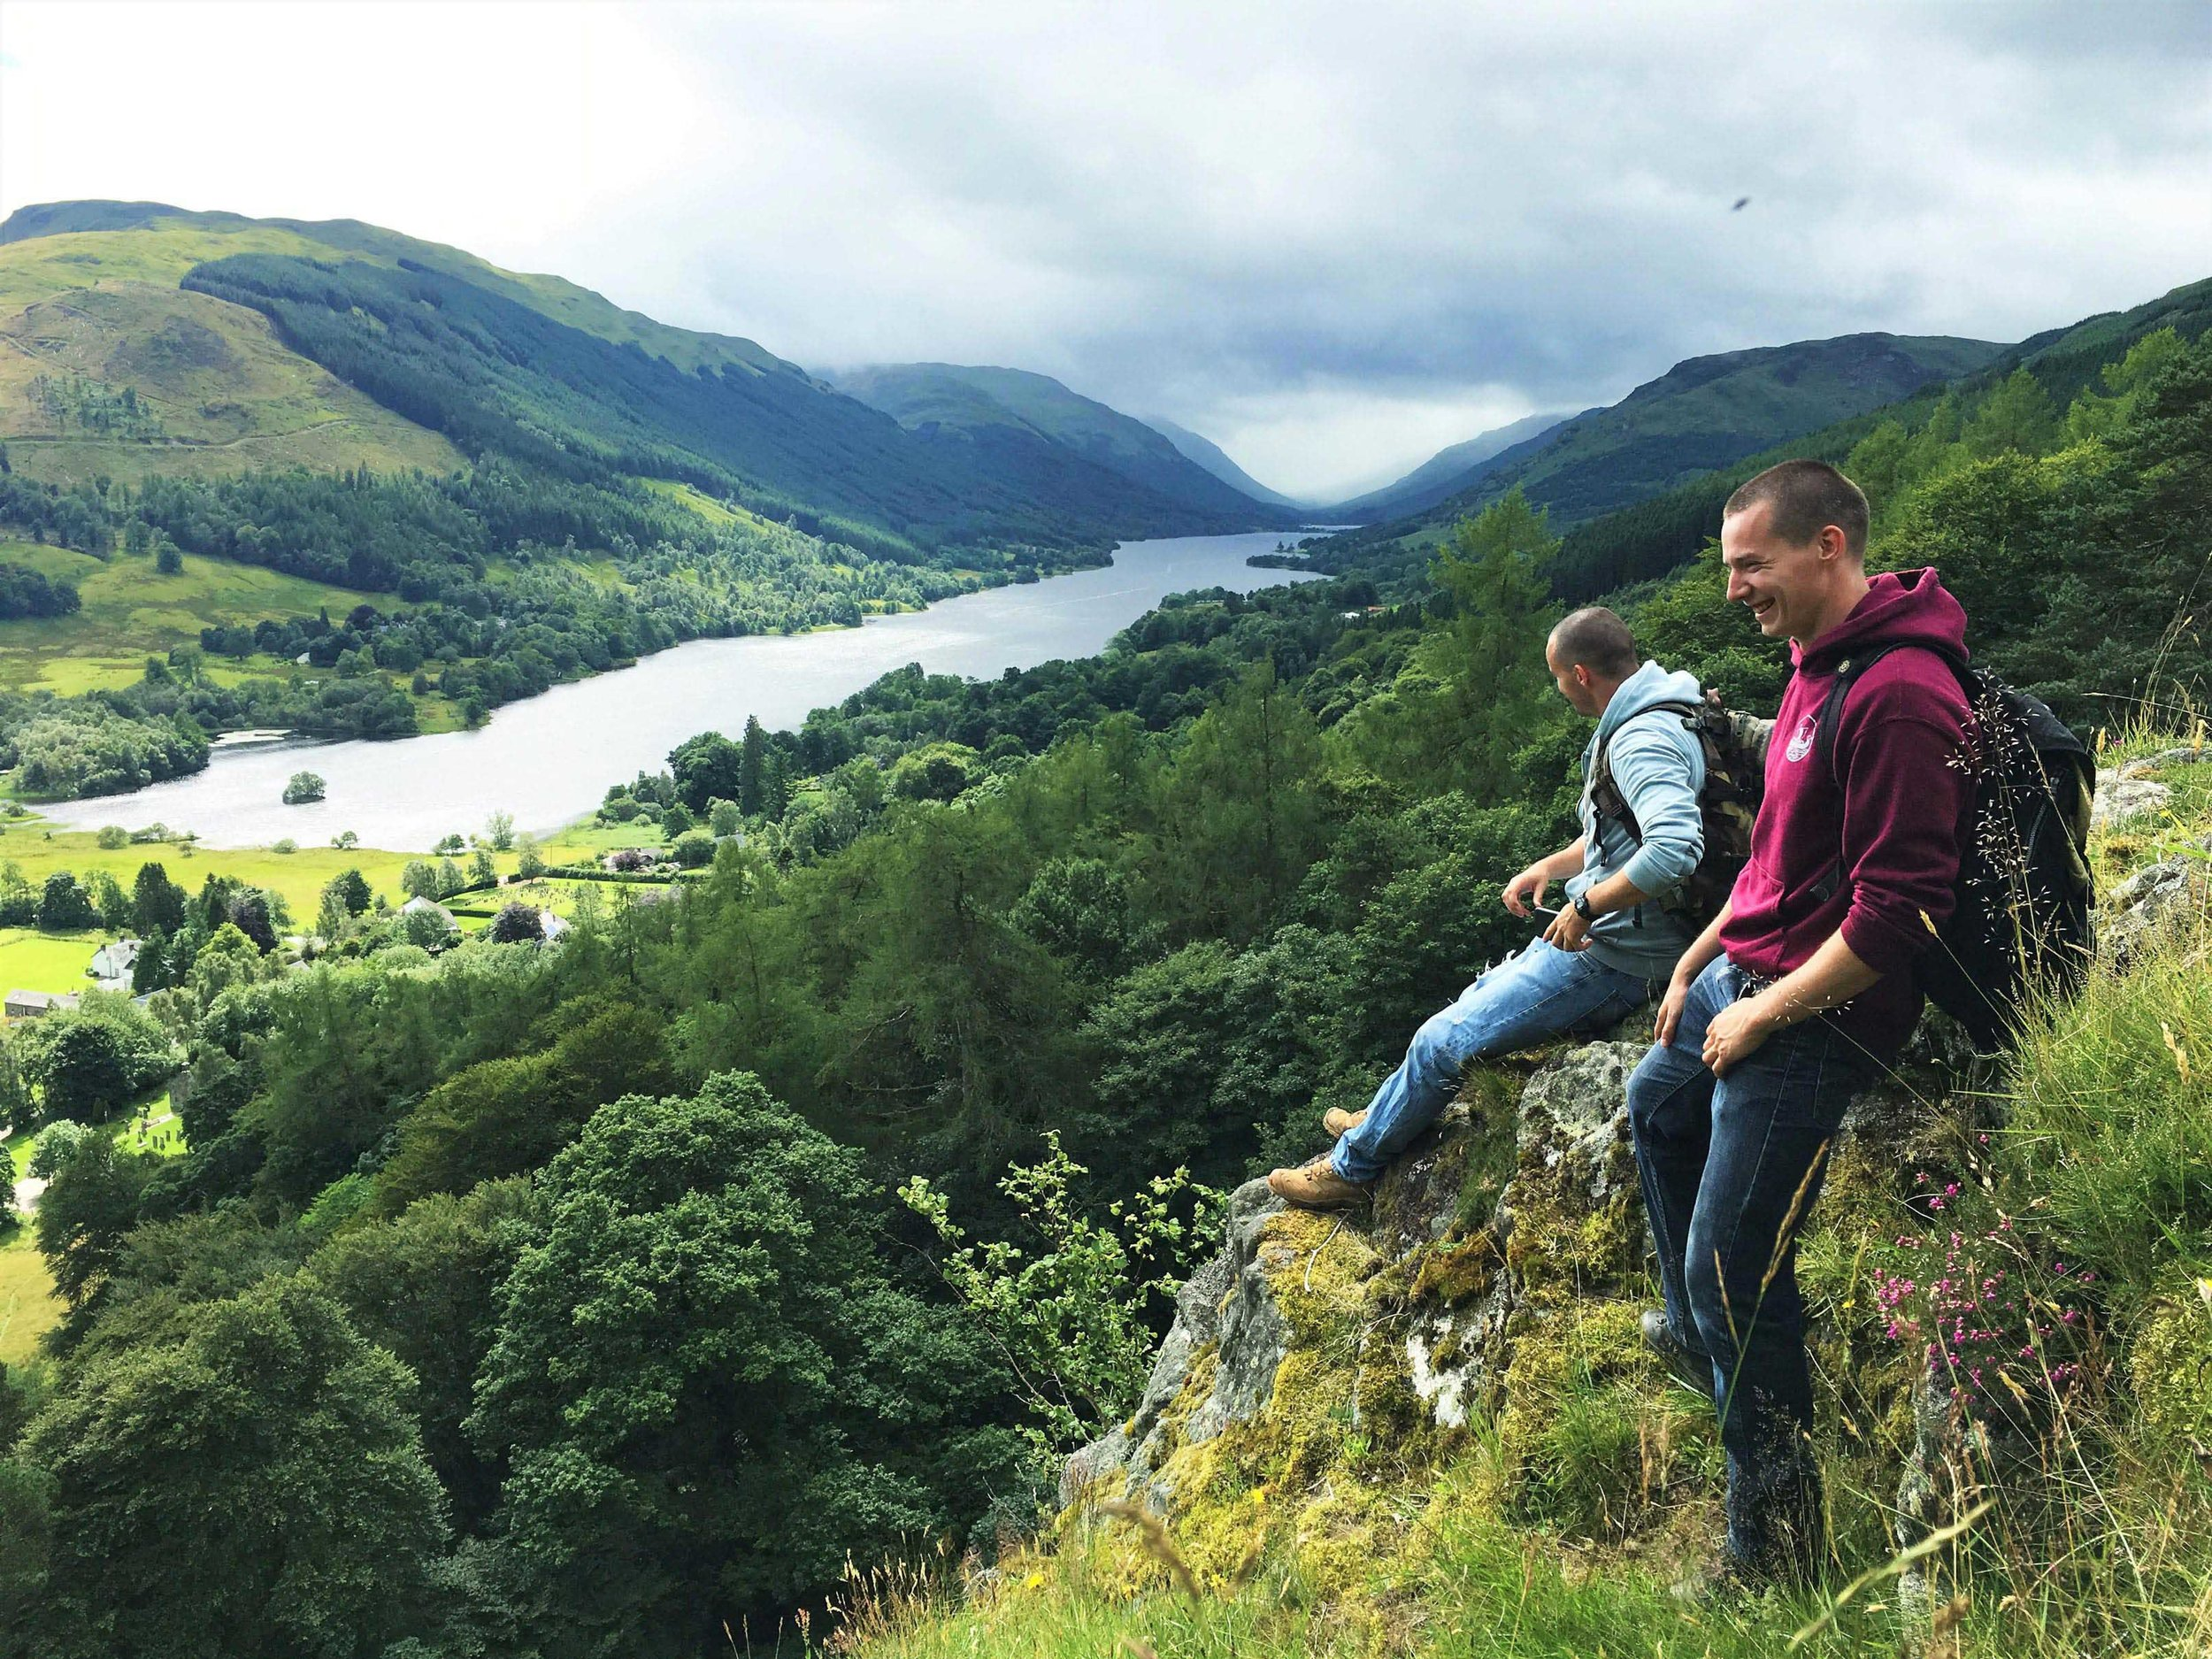 enjoying the views in balquhidder glen